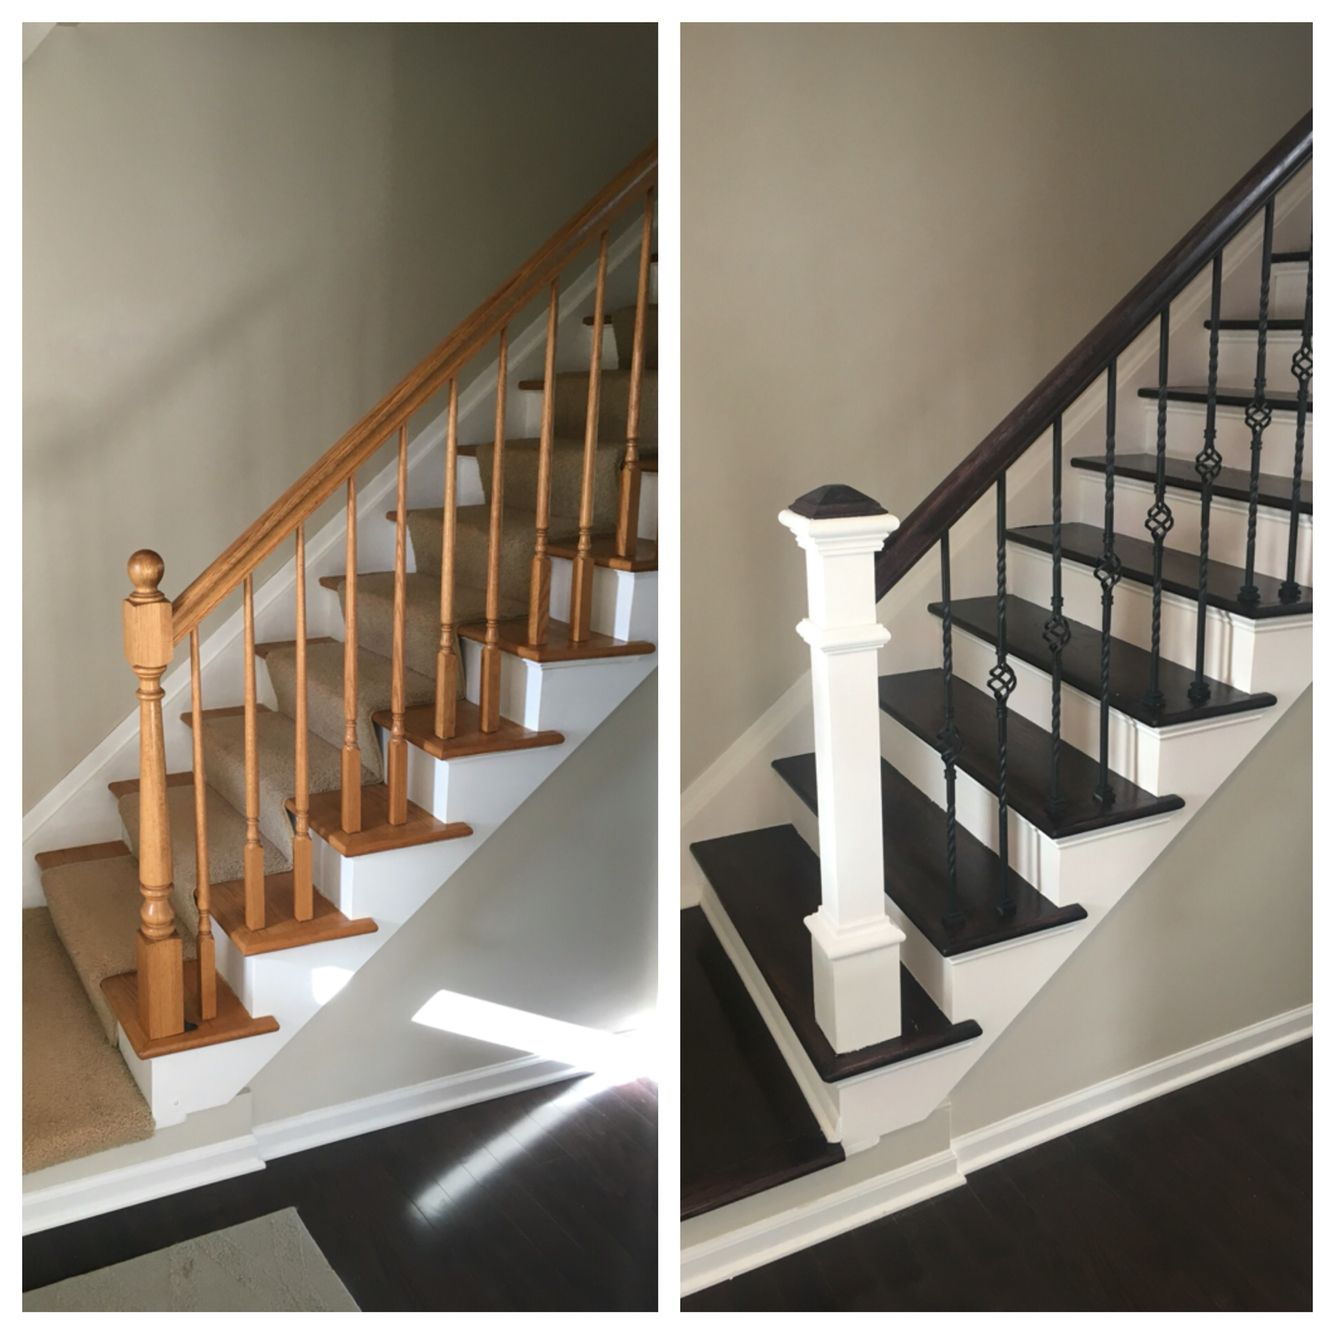 Stair Steps Ideas: Staircase Makeover, Staircase Wall Decorating Ideas